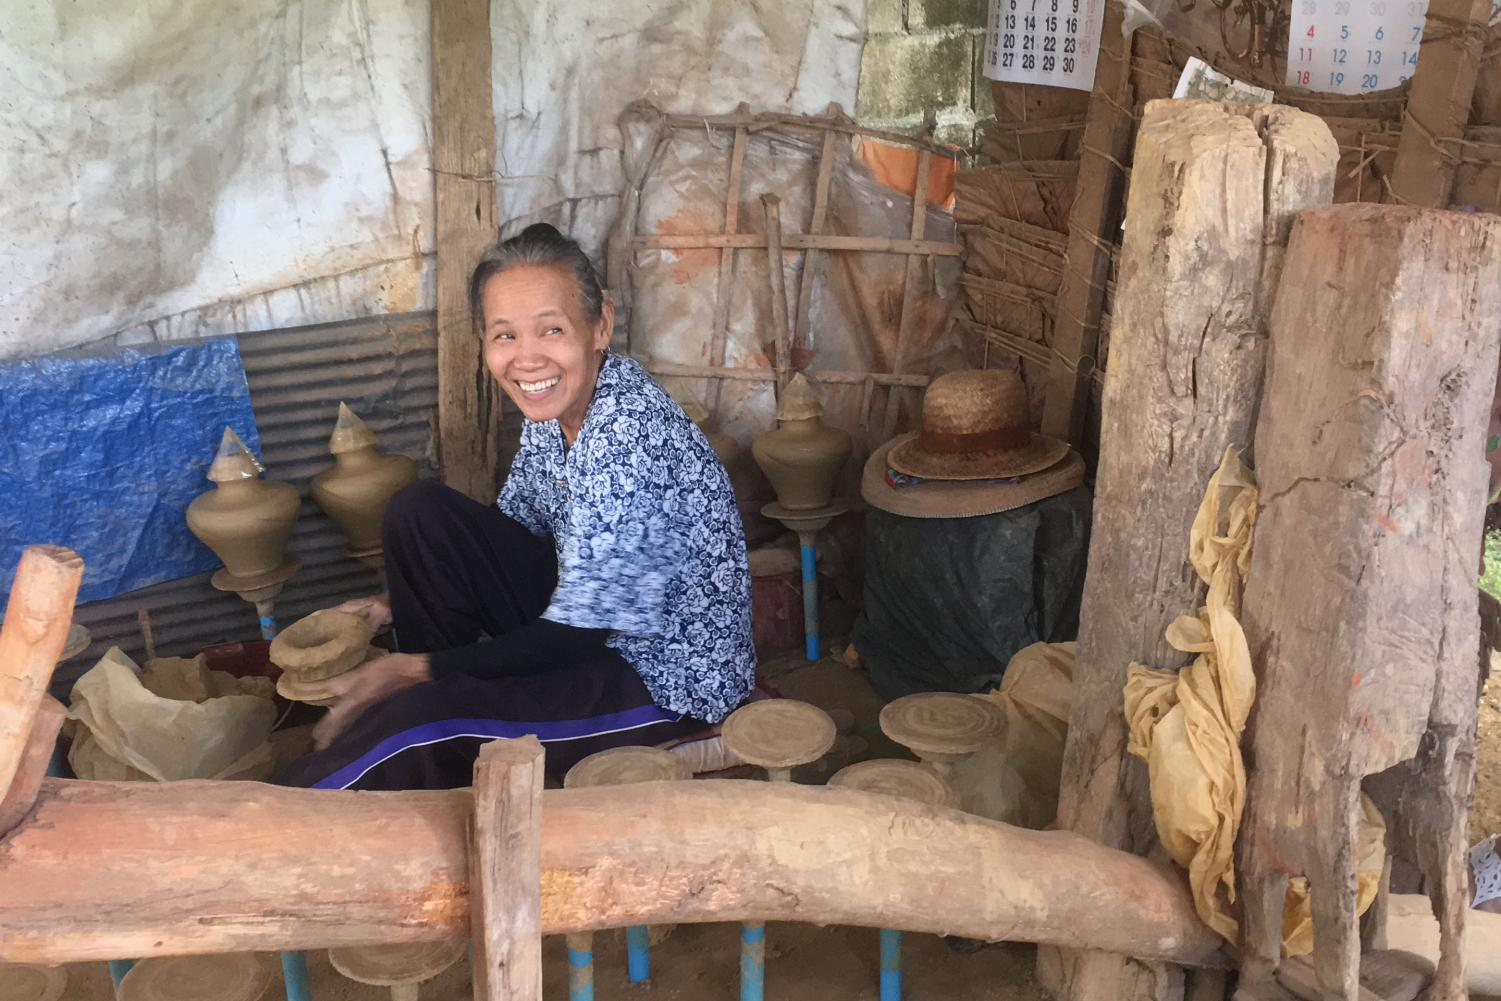 A women sits at her pottery wheel, smiling after someone complimented her work.